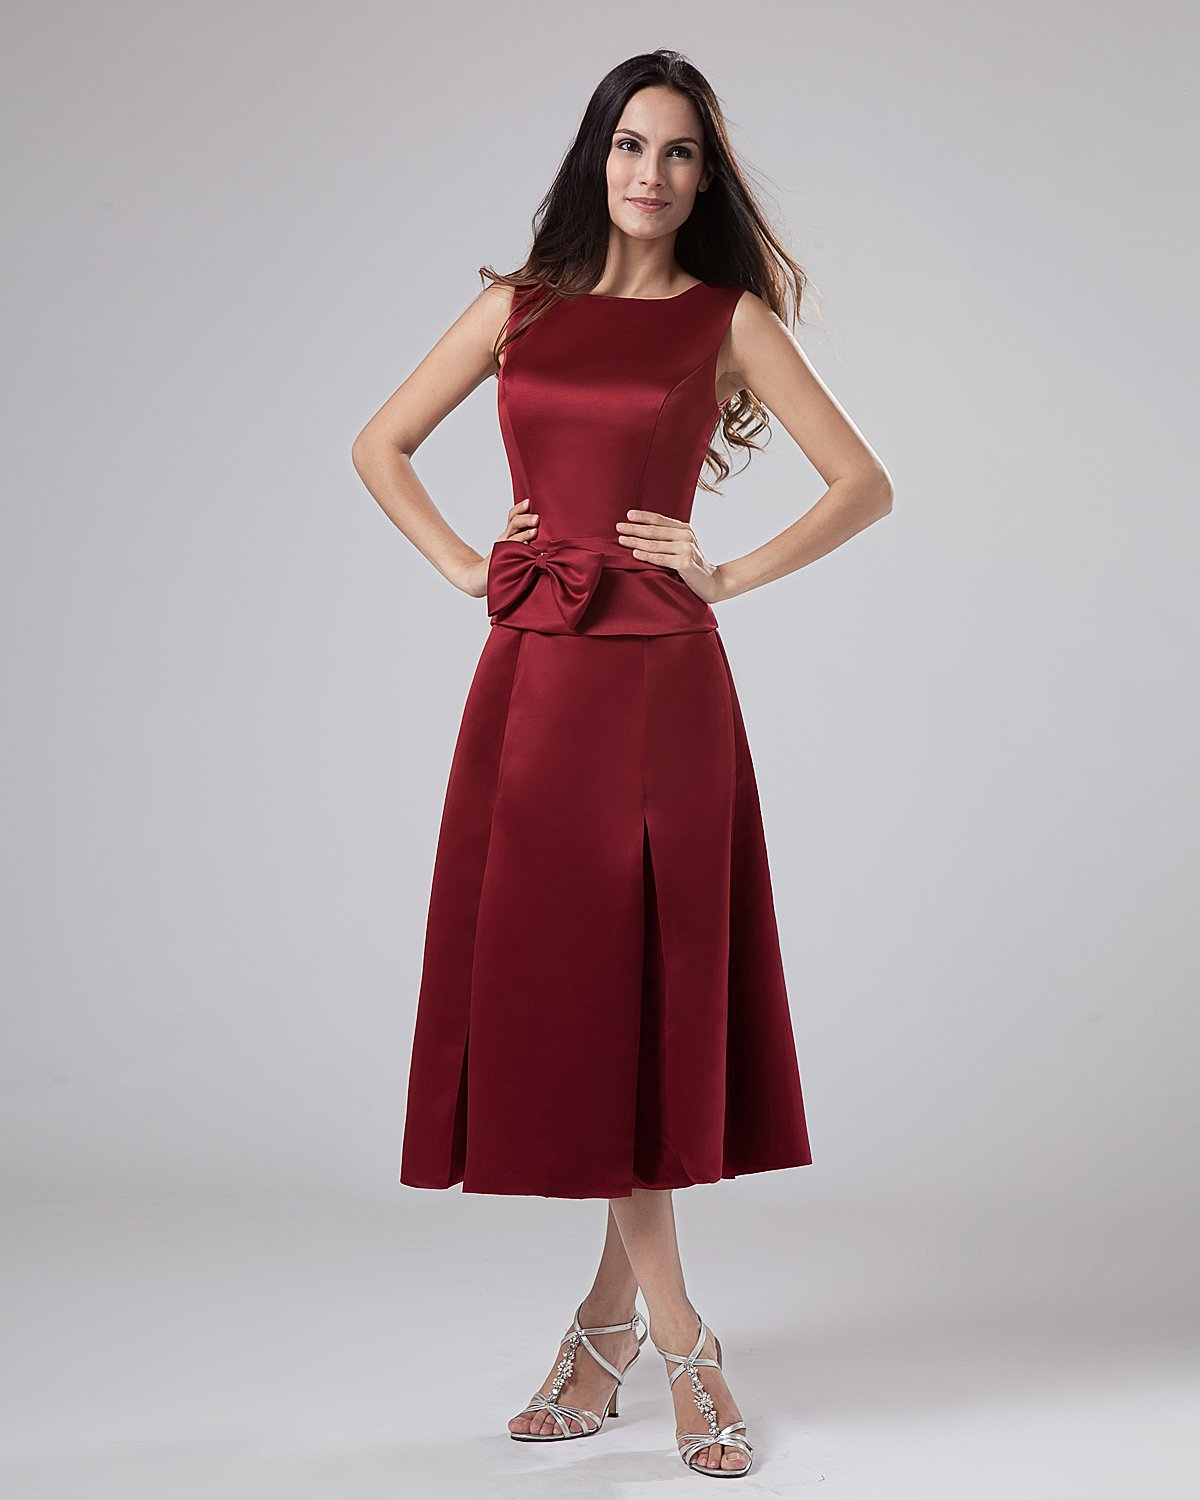 Satin Embroidery Strapless Tea Length Mothers of Bride Guests Dresses